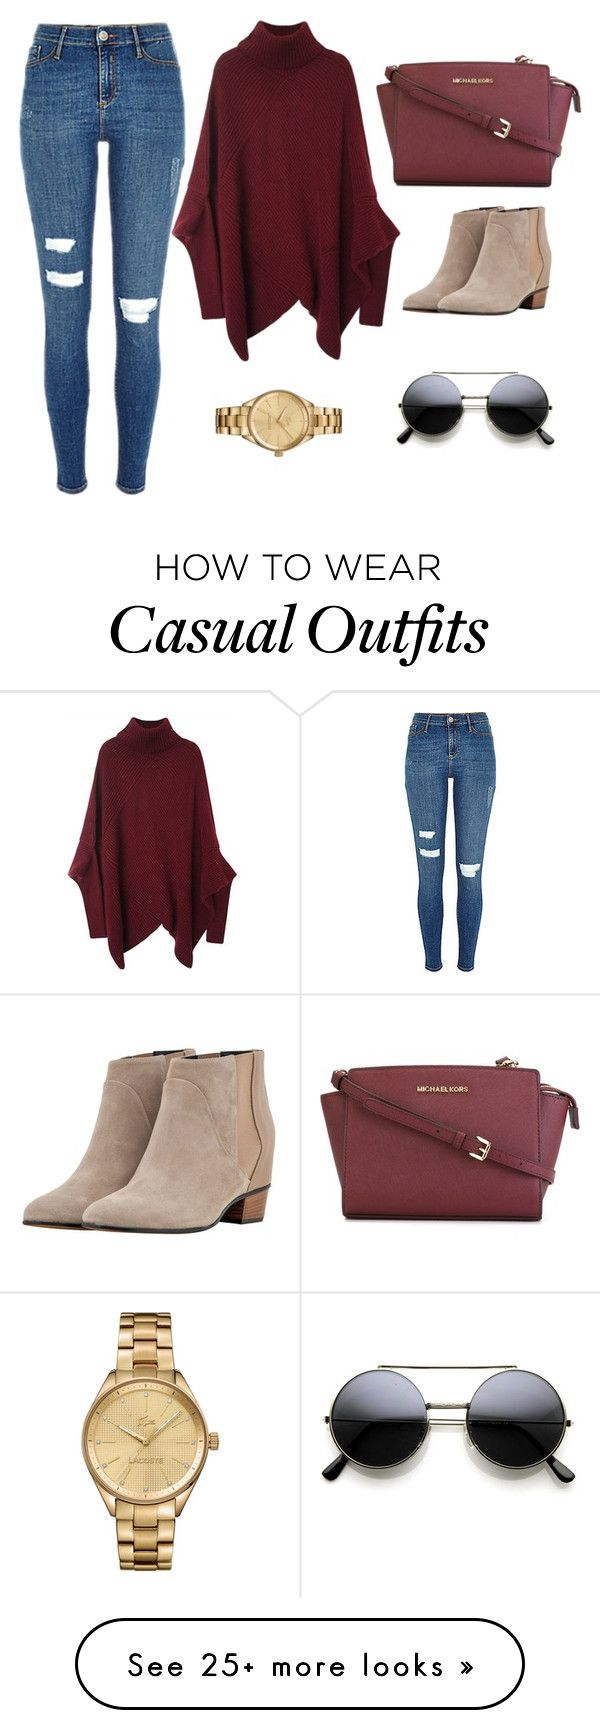 """""""Casual Outfit"""" by alina-w on Polyvore featuring MICHAEL Michael Kors, Golden Goose, Lacoste, women's clothing, women's fashion, women, female, woman, misses and juniors"""